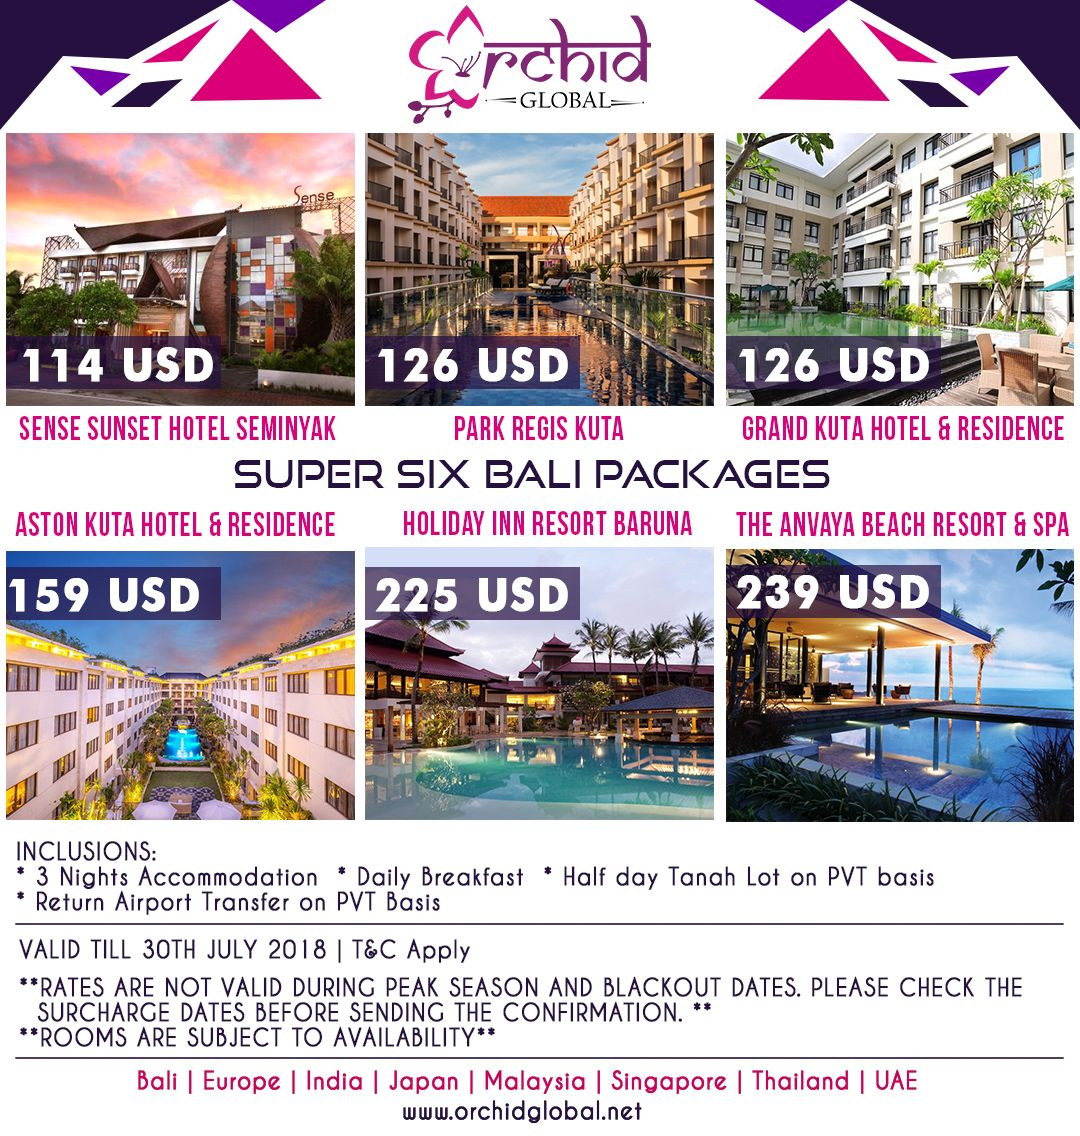 Experience Eastern Europe To Know More About Our Products Login Voucher Hotel Park Regis Kuta Orchidglobalnet Orchidglobal Easterneurope Lovet